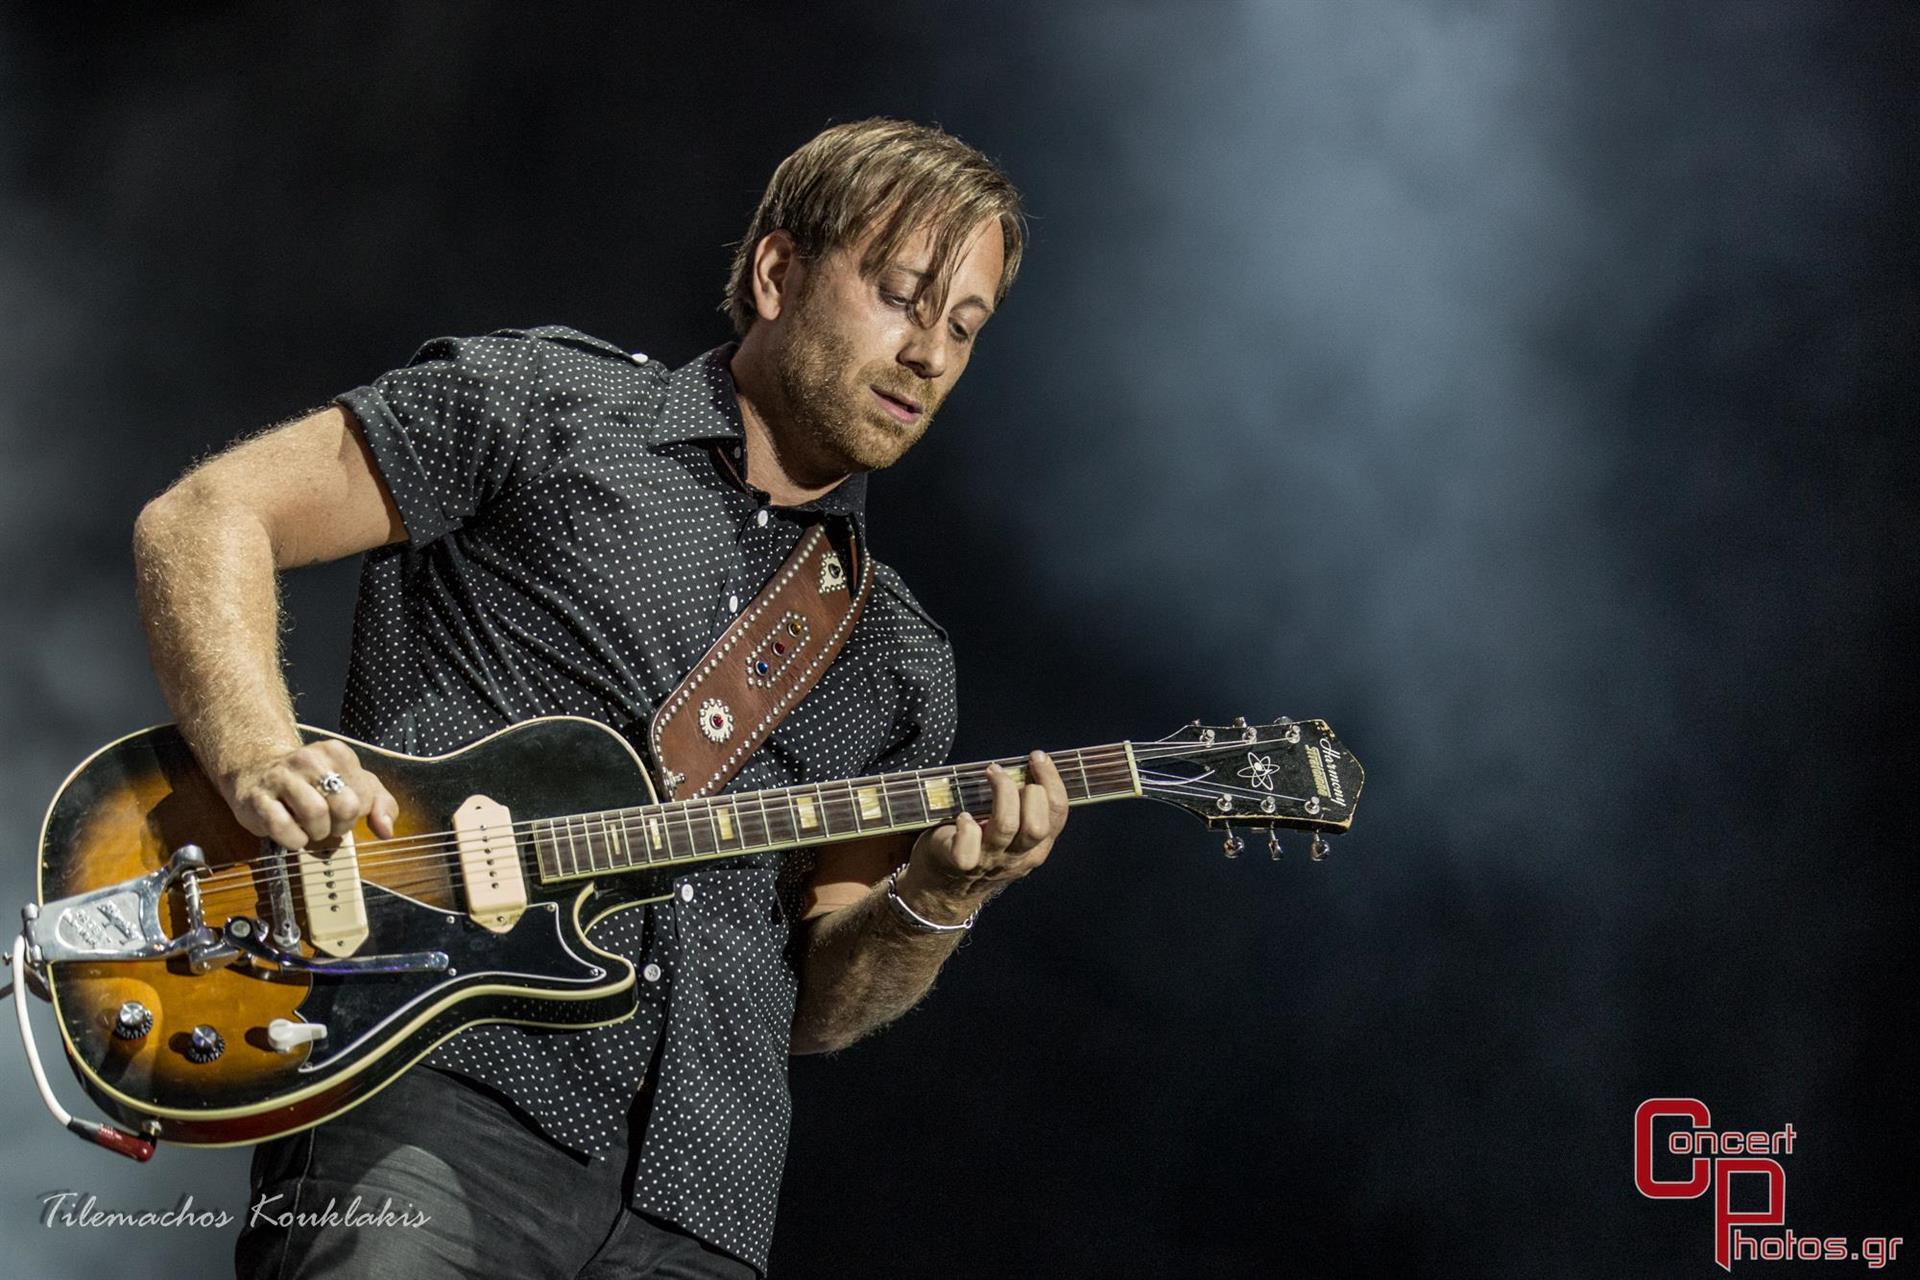 Rockwave 2015 - Black Keys-Black Angels-1000mods-The Big Nose Attack-Puta Volcano-Rockwave 2015 - Black Keys-Black Angels-1000mods photographer:  - 01_Black Keys _17